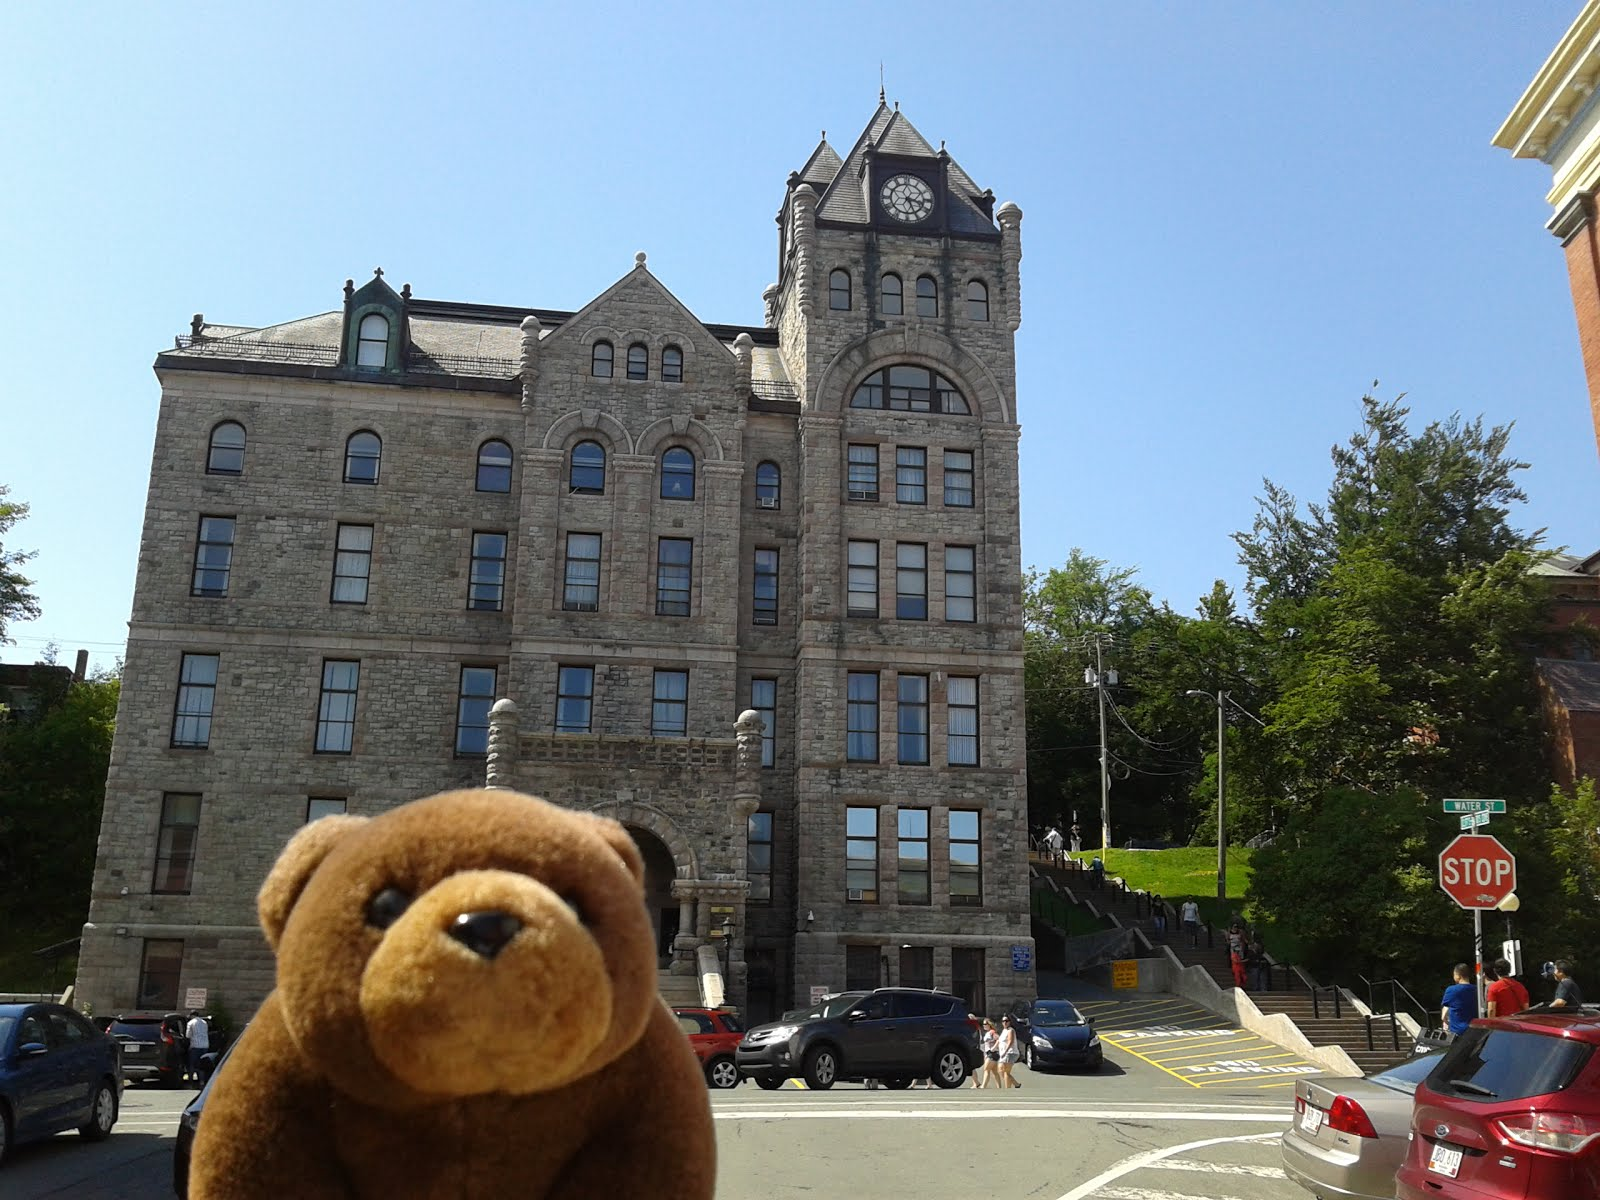 Teddy Bear in St.John's, Canada